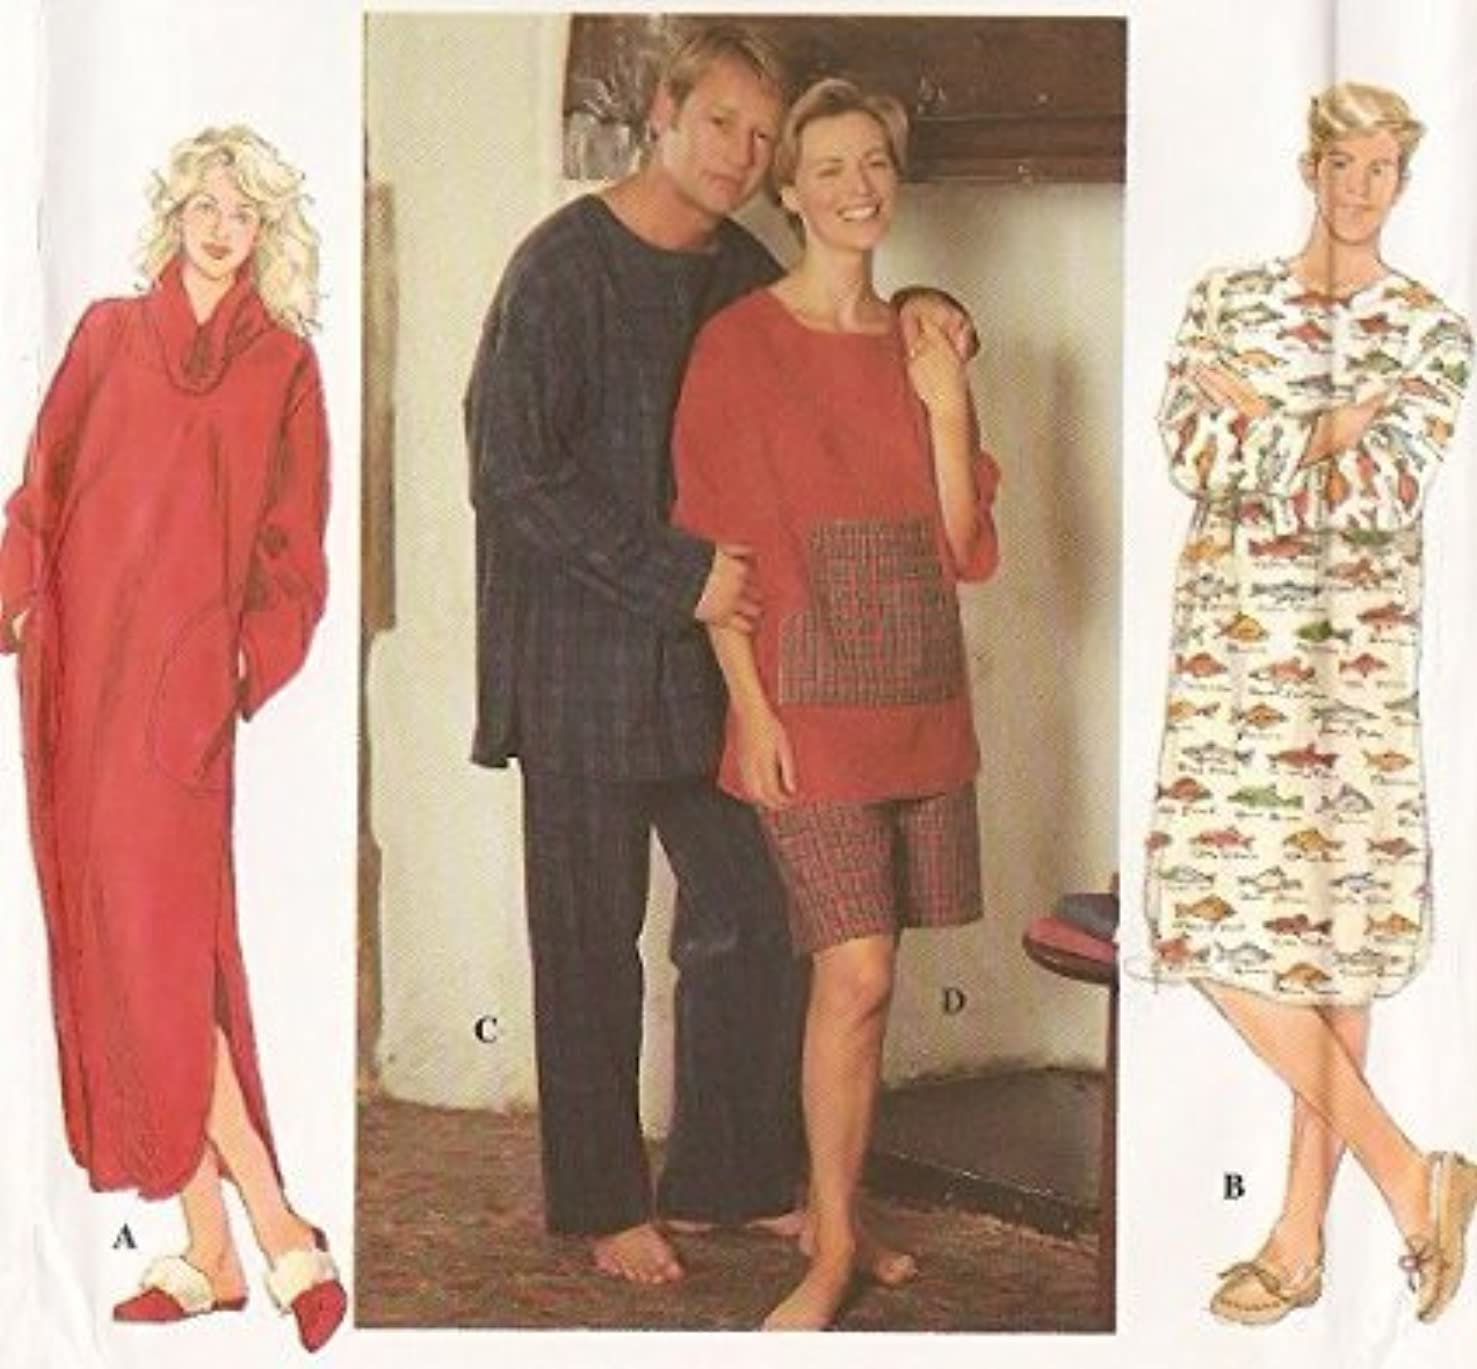 Simplicity 9858 Nightshirt And Pajamas - Unisex Sewing Pattern - Size BB (L, XL)